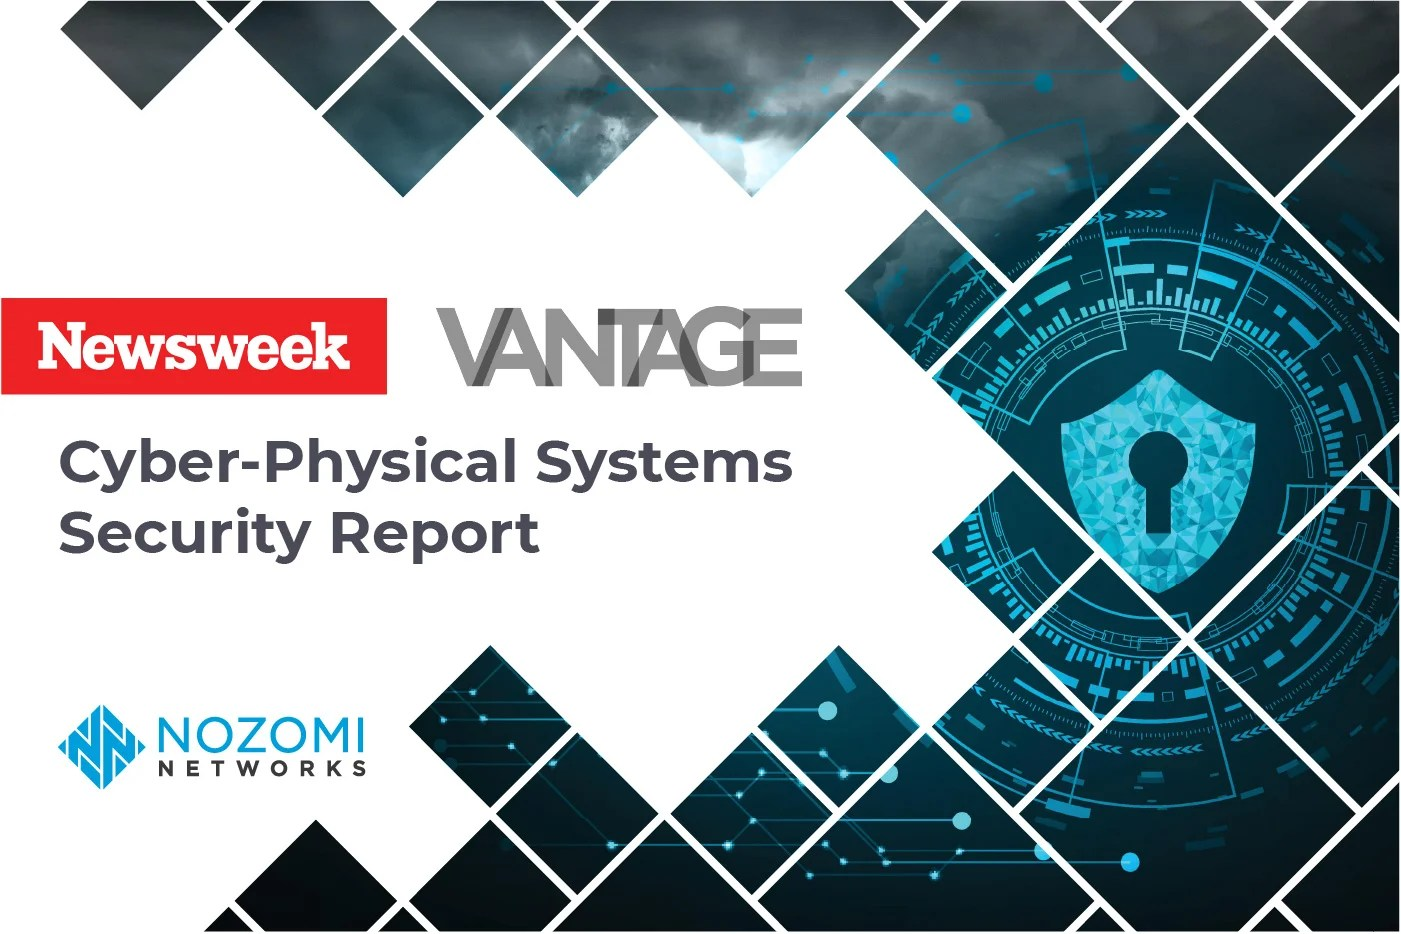 Critical Infrastructure Cybersecurity: Survey Finds Perfect Storm